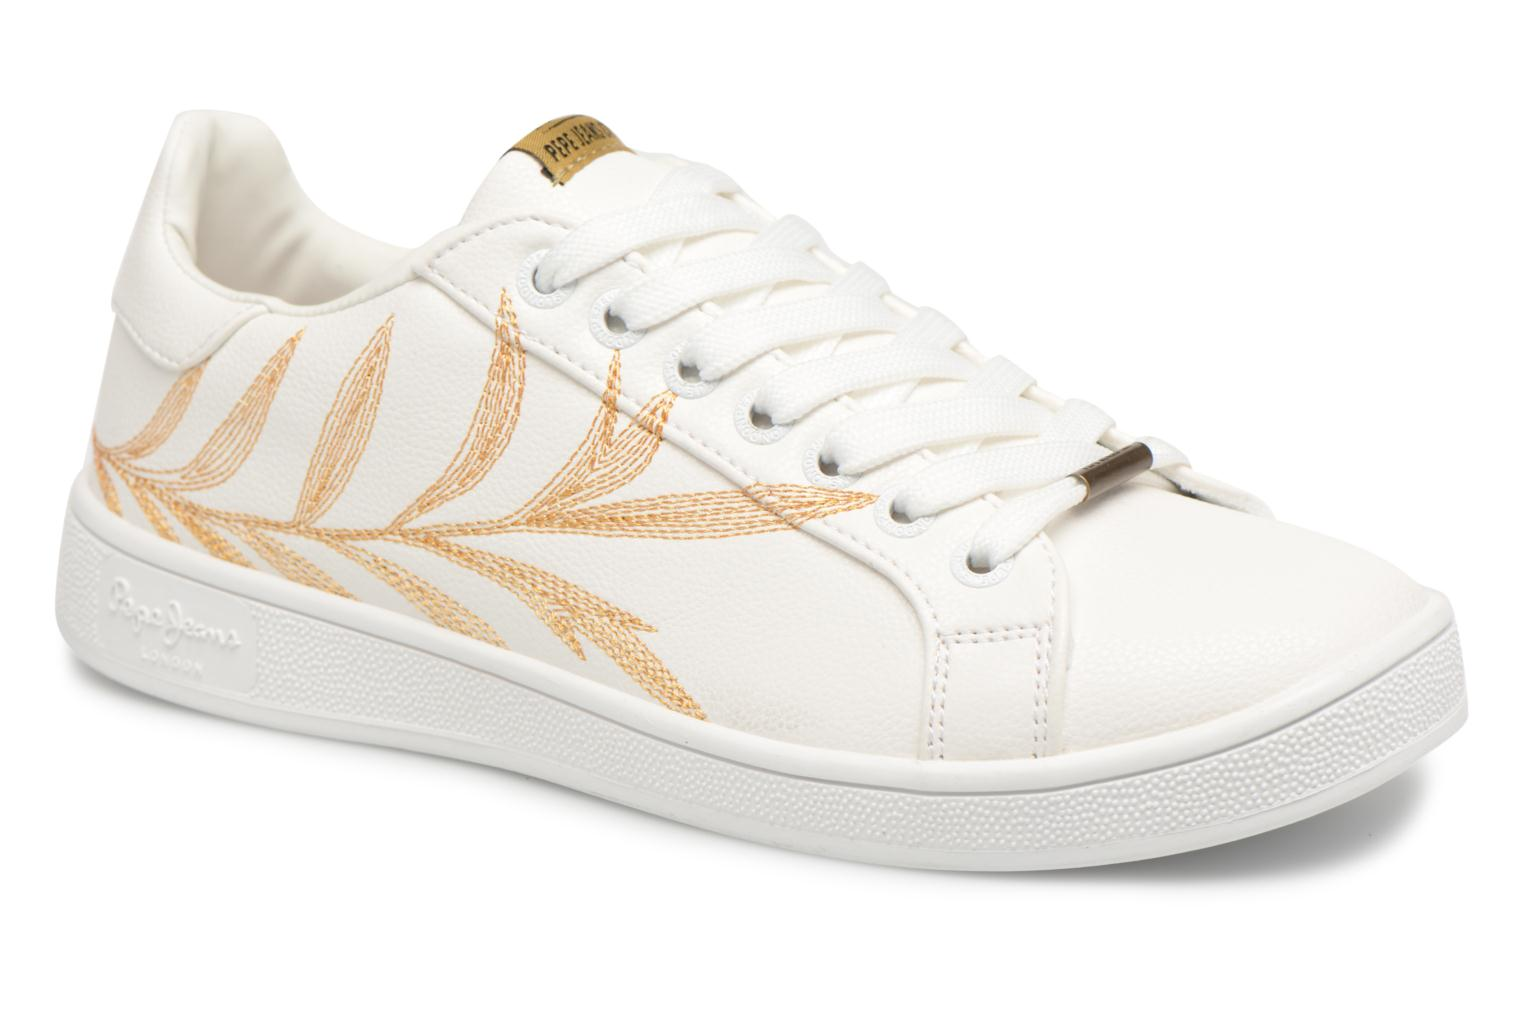 Marques Chaussure femme Pepe jeans femme Brompton Embroidery White